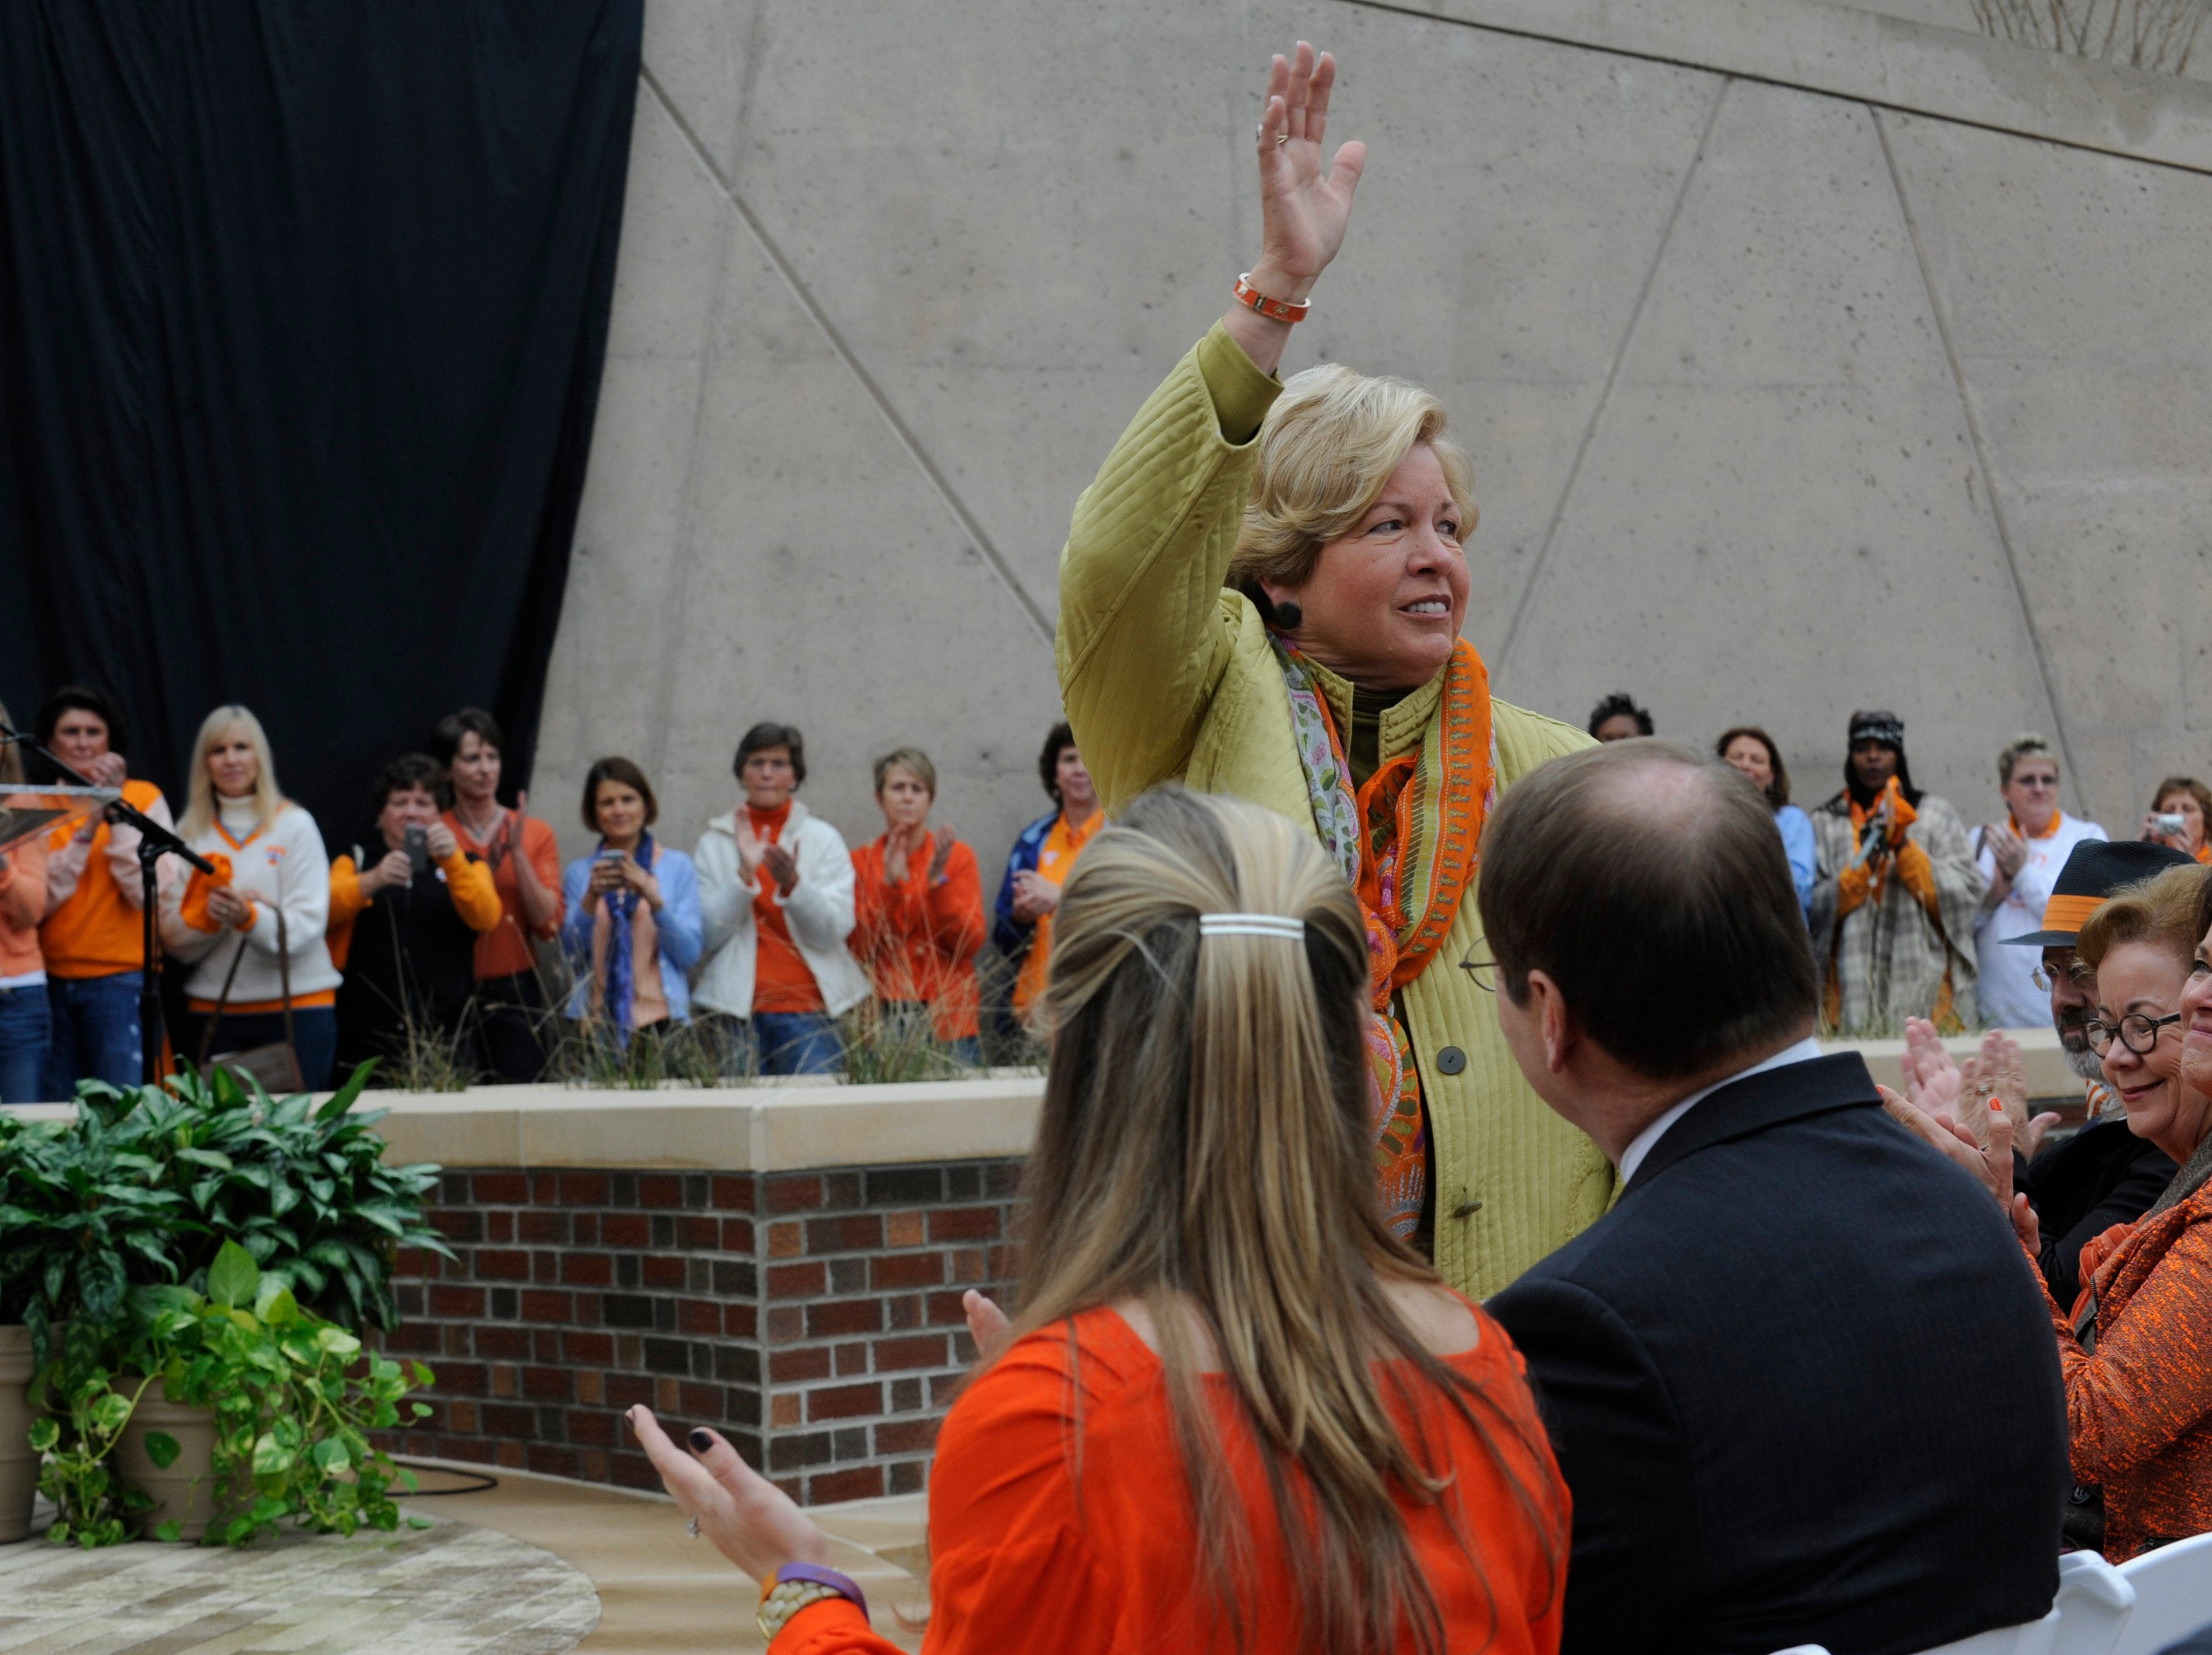 Former Women's Athletic Director Joan Cronan is recognized during a ceremony at the University of Tennessee honoring legendary coach Pat Summitt Friday, Nov 22, 2013.